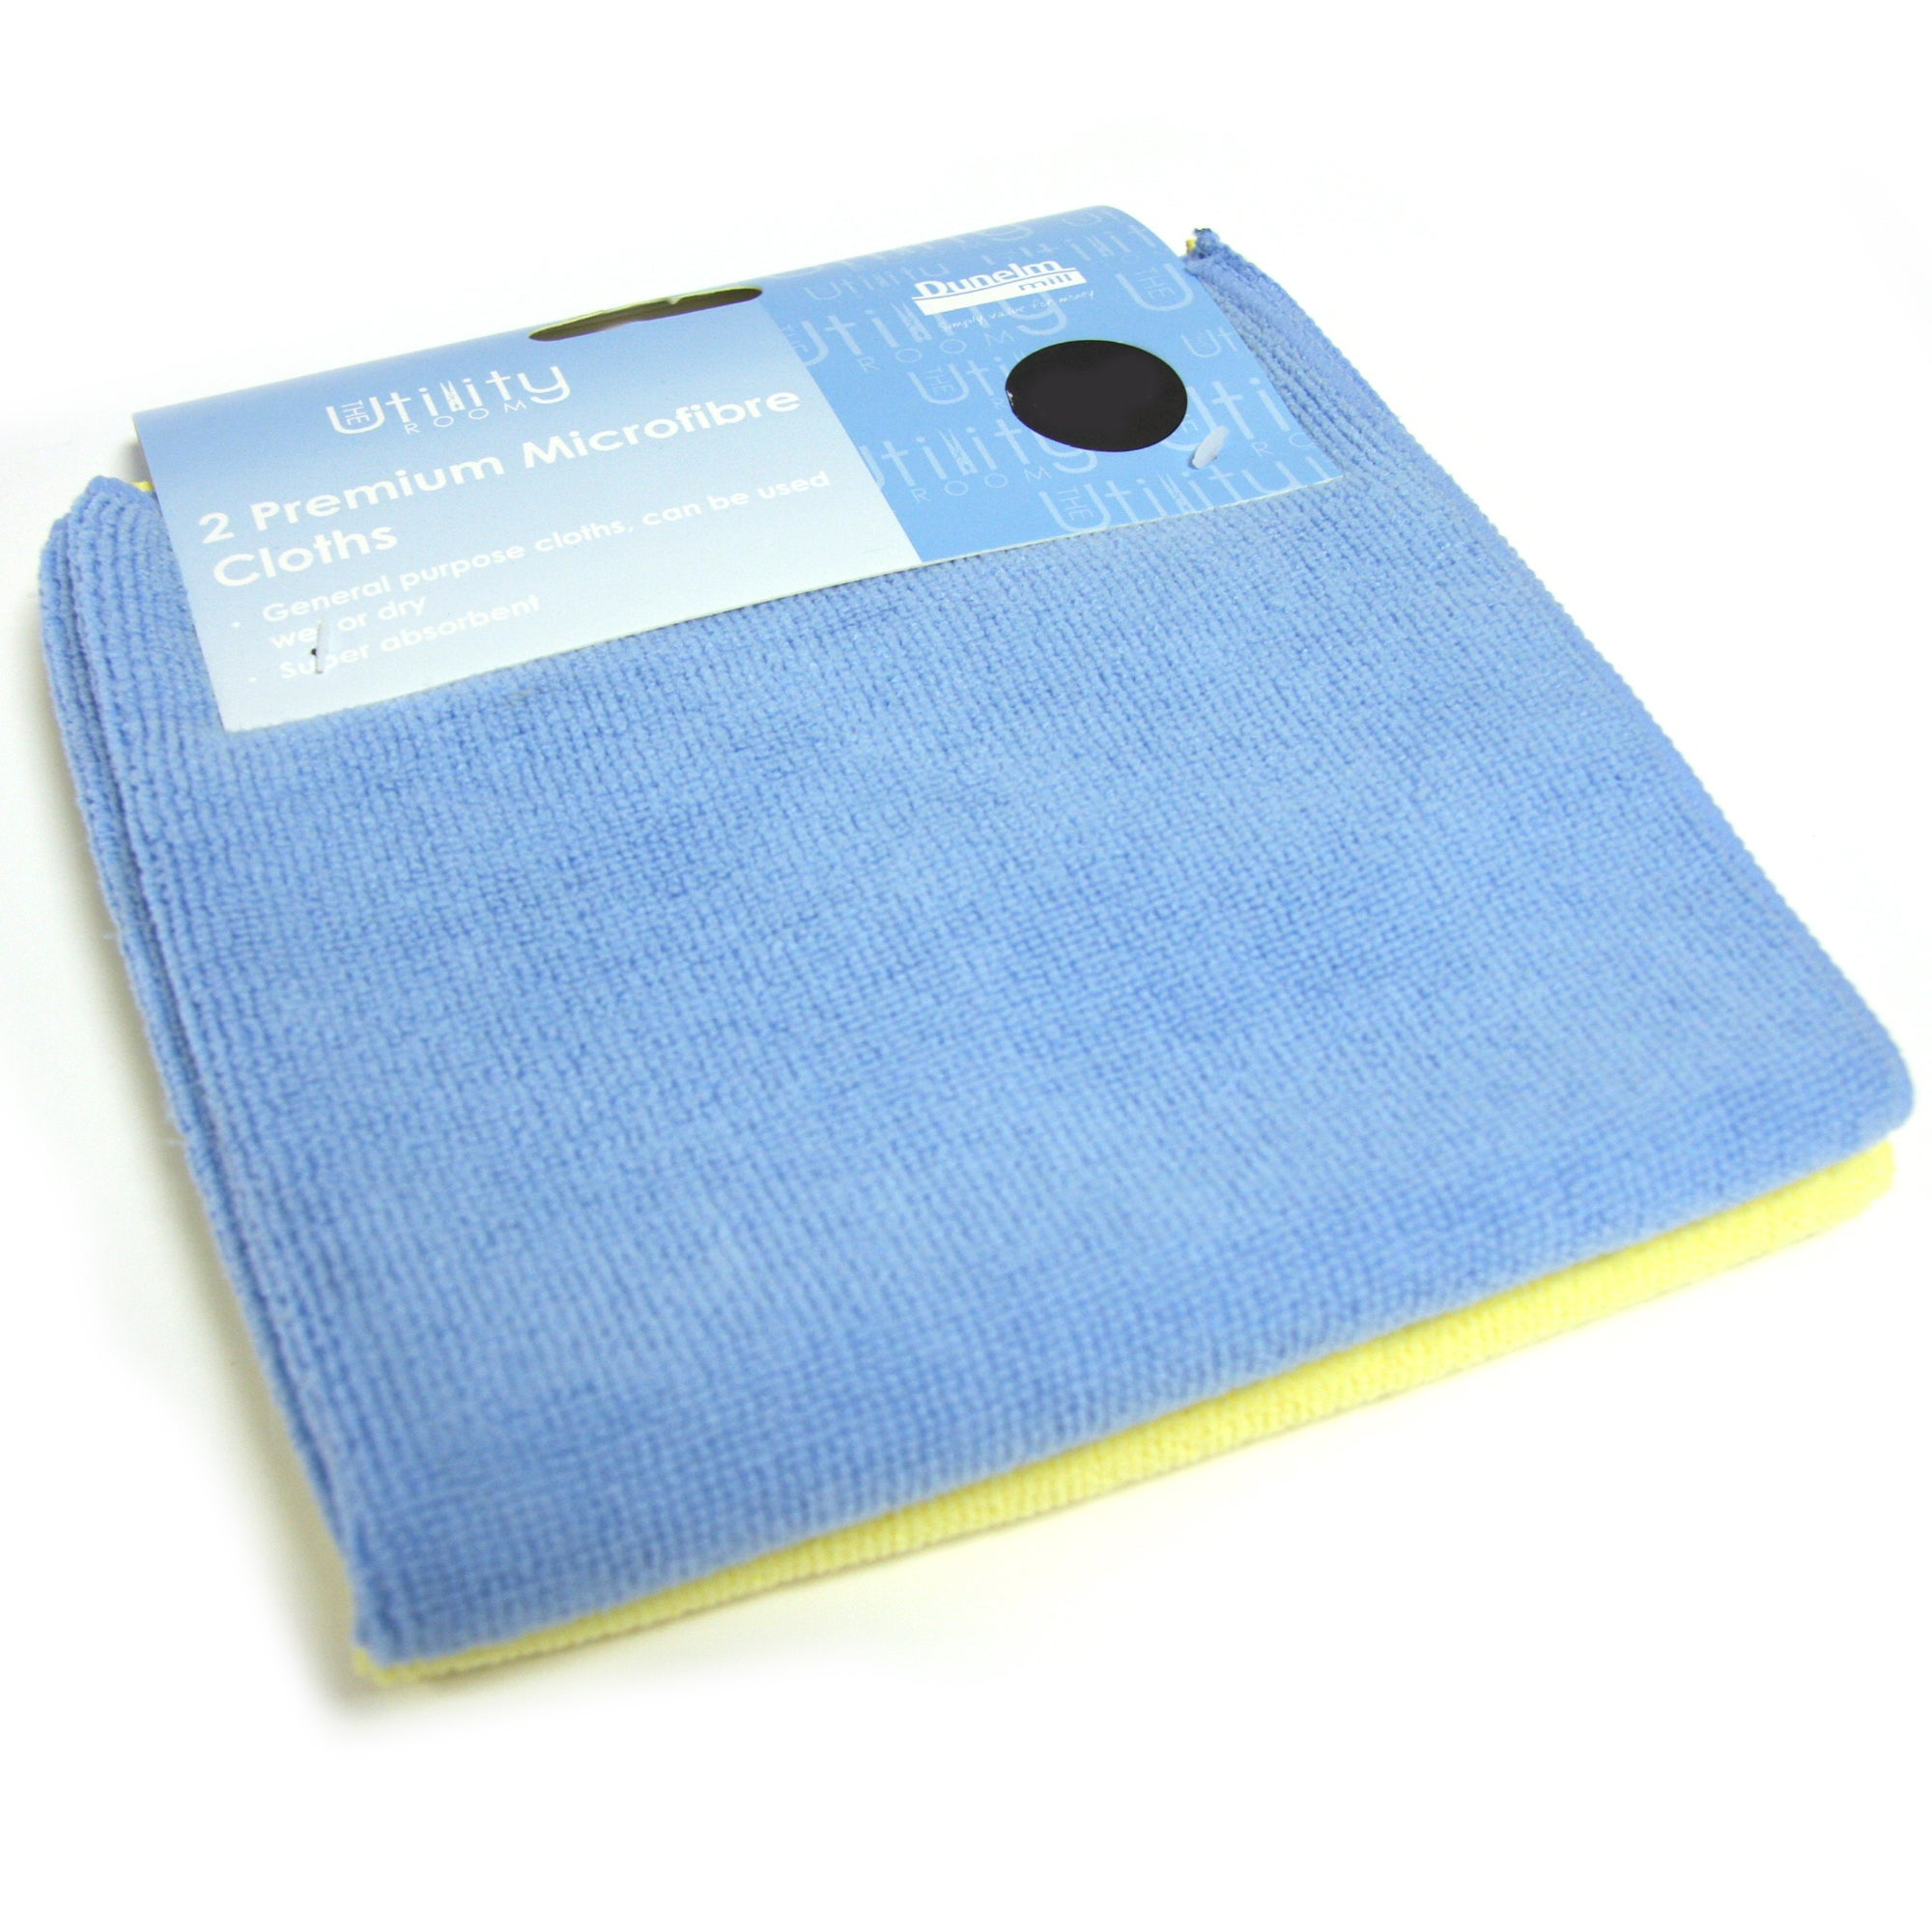 Pack of 2 Premium Microfibre Cloths